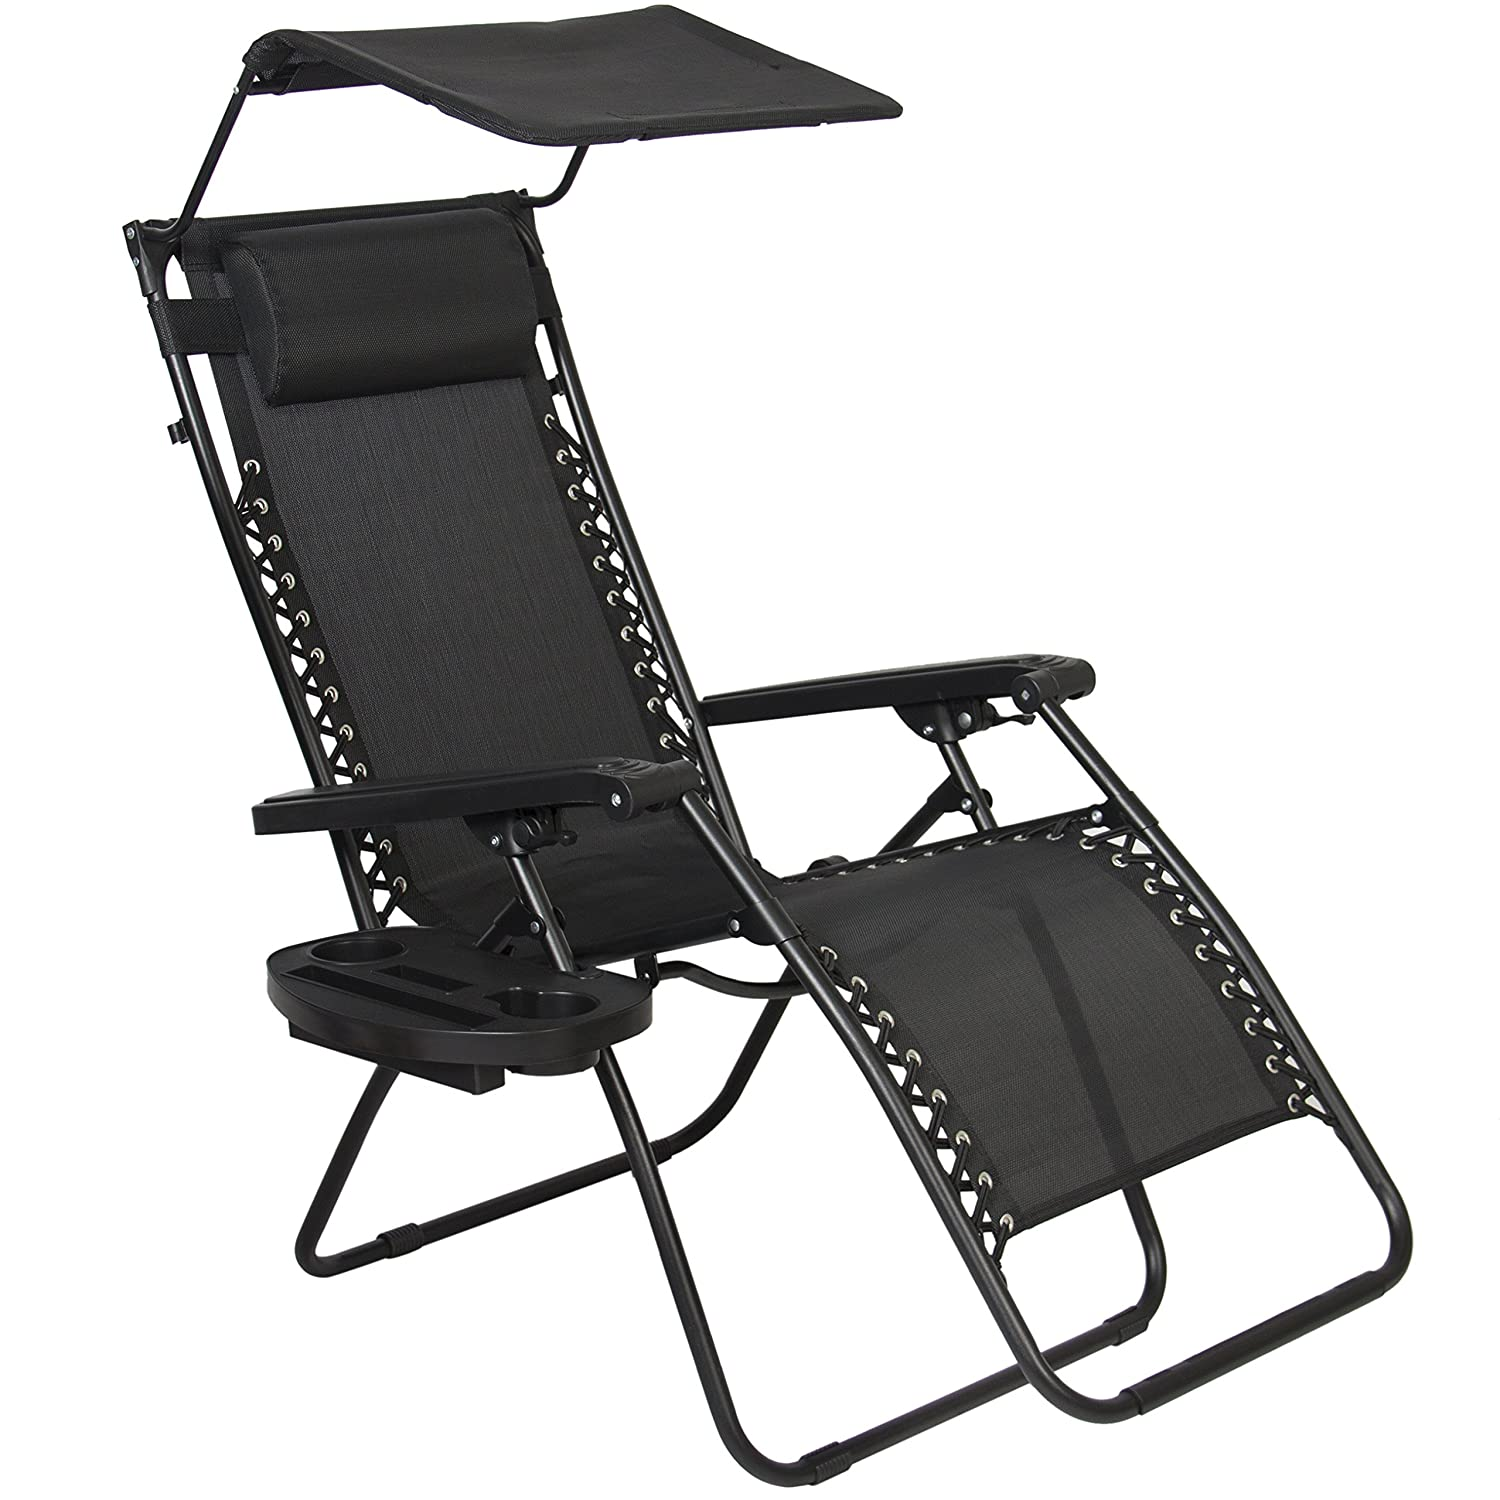 Anti gravity chair camp - Amazon Com Best Choice Products Zero Gravity Canopy Sunshade Lounge Chair Cup Holder Patio Outdoor Garden Black Patio Lawn Garden